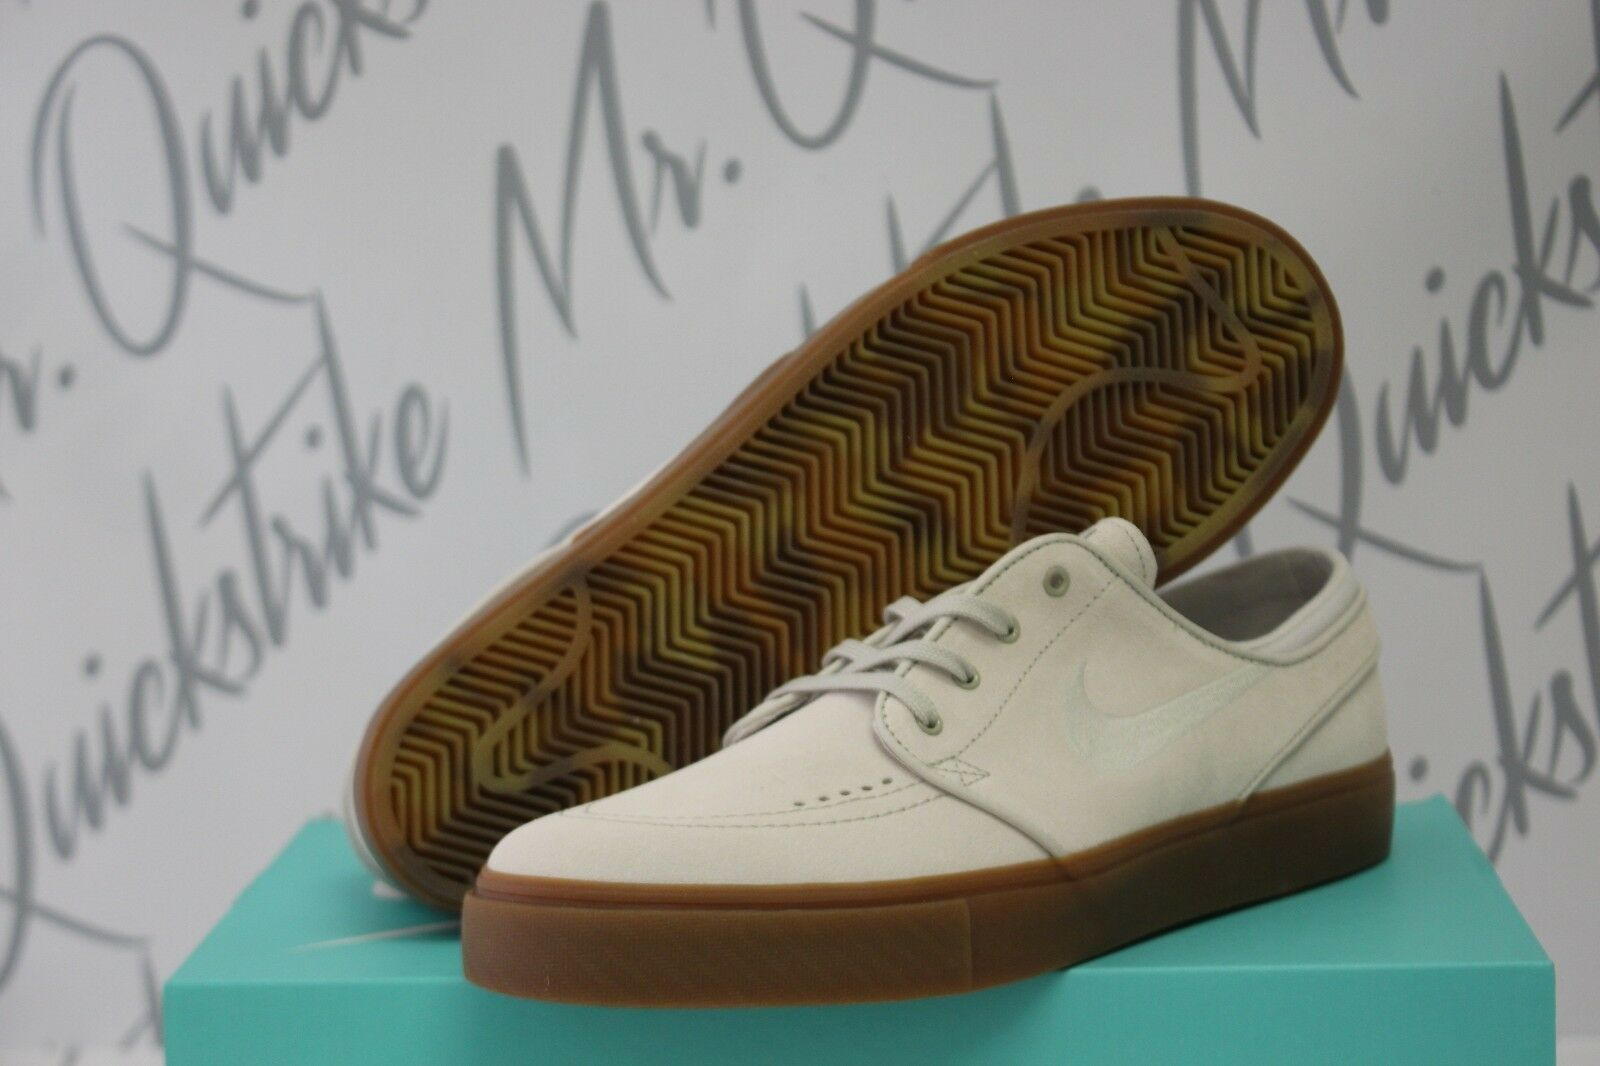 NIKE SB ZOOM STEFAN JANOSKI SZ 9.5 9.5 9.5 LIGHT BONE THUNDER Bleu GUM BROWN 333824 057 25f83f